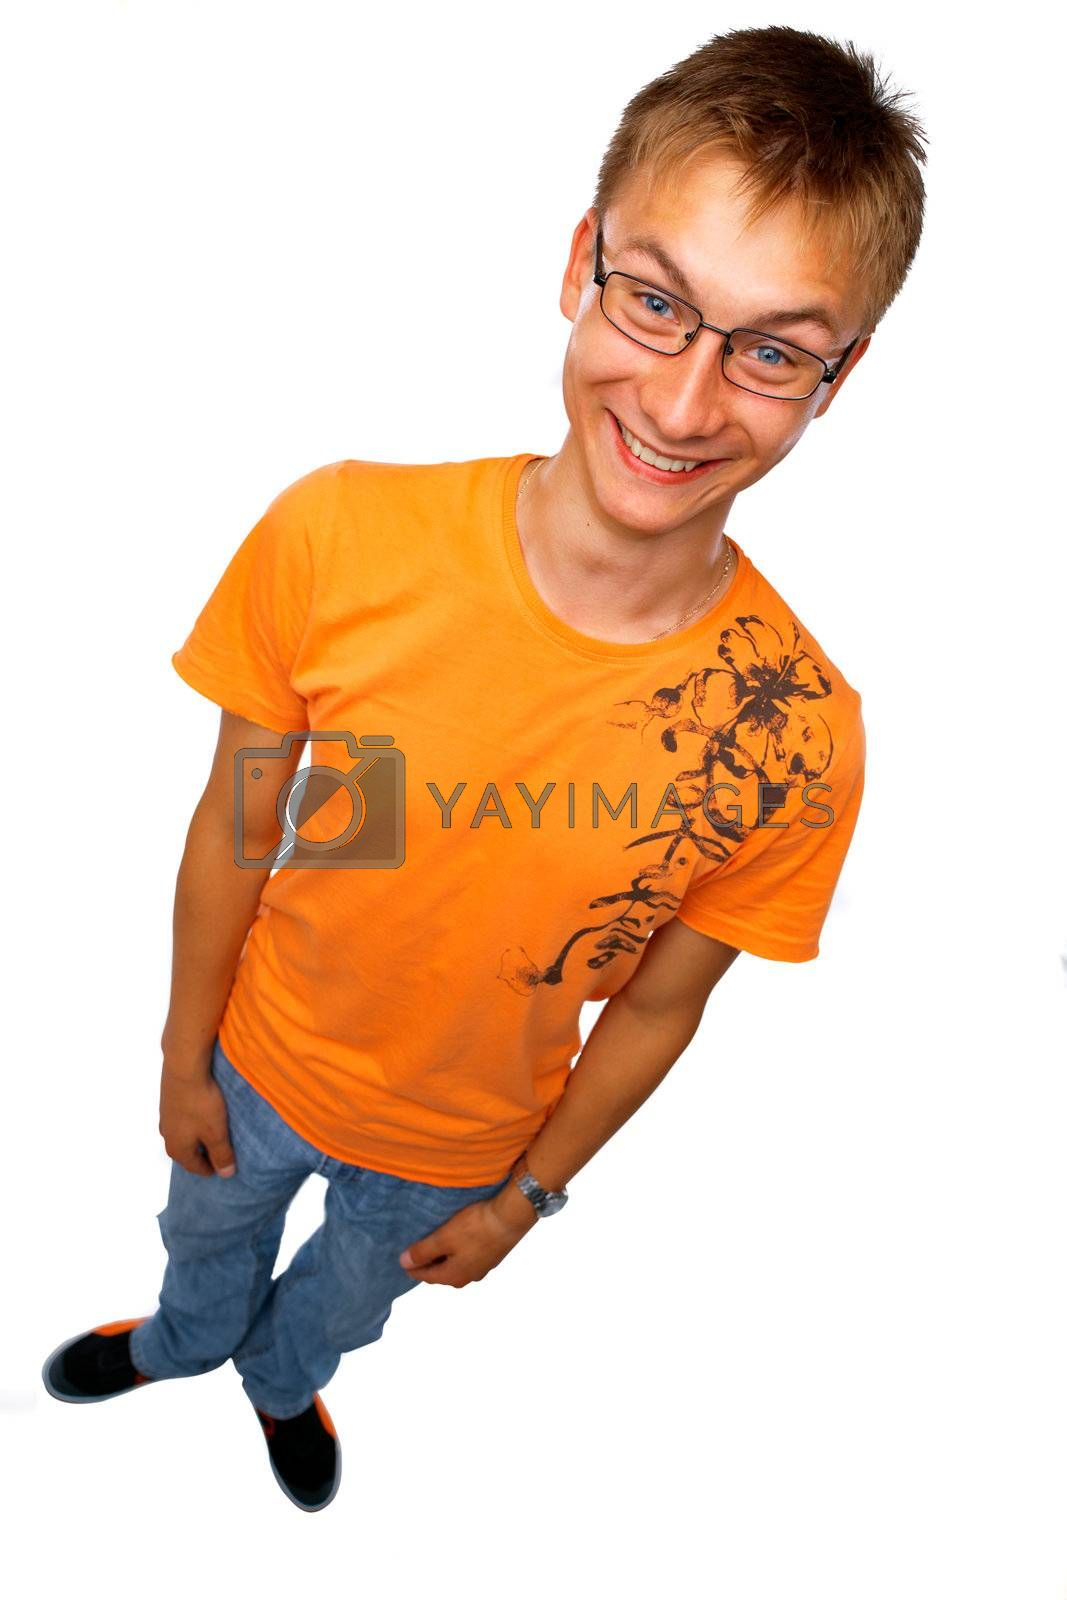 Full length of a happy young guy standing on white